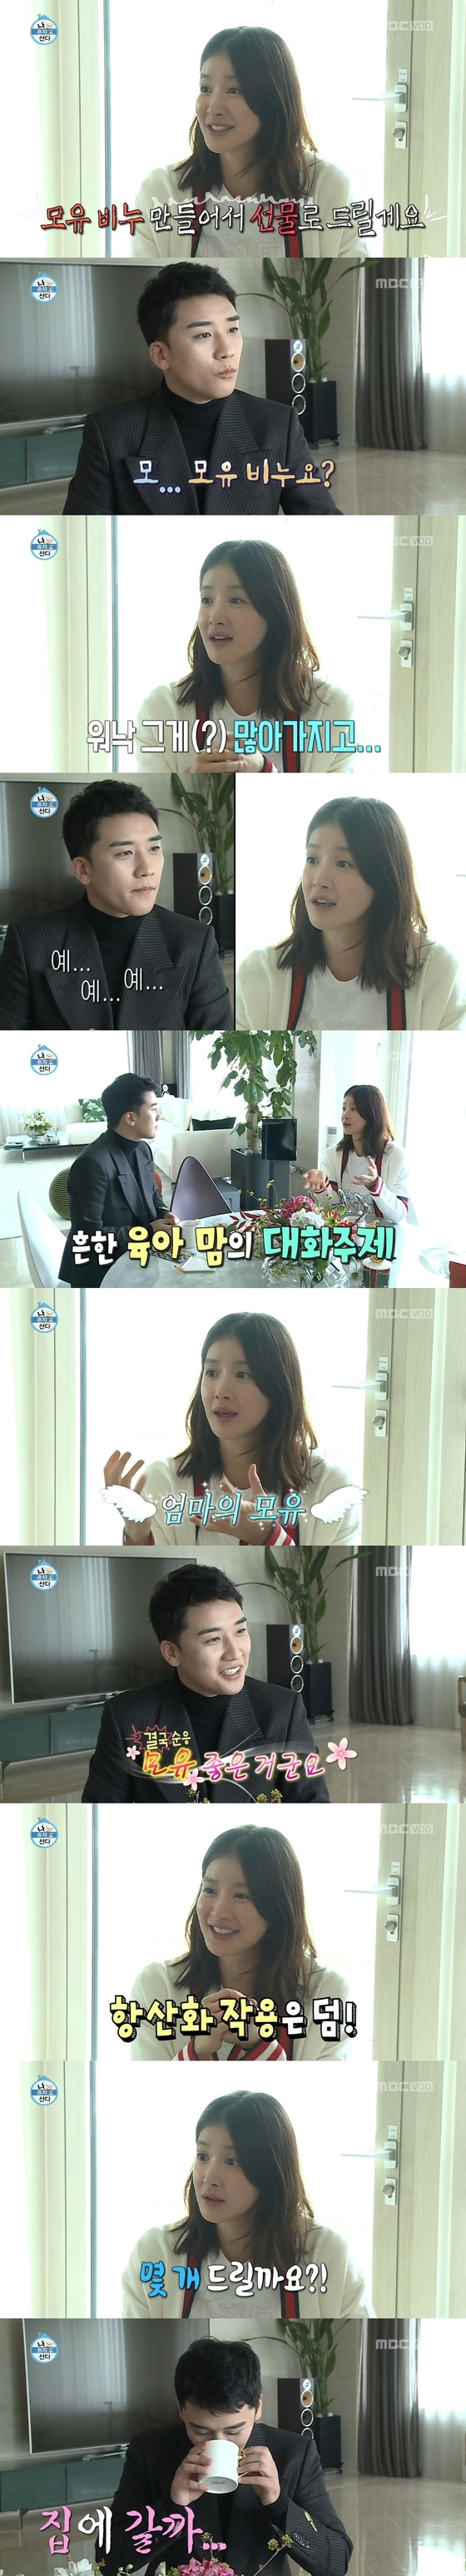 Lee Si-young offering Seungri breast milk soap and explaining its positive effects. Photo from MBC.